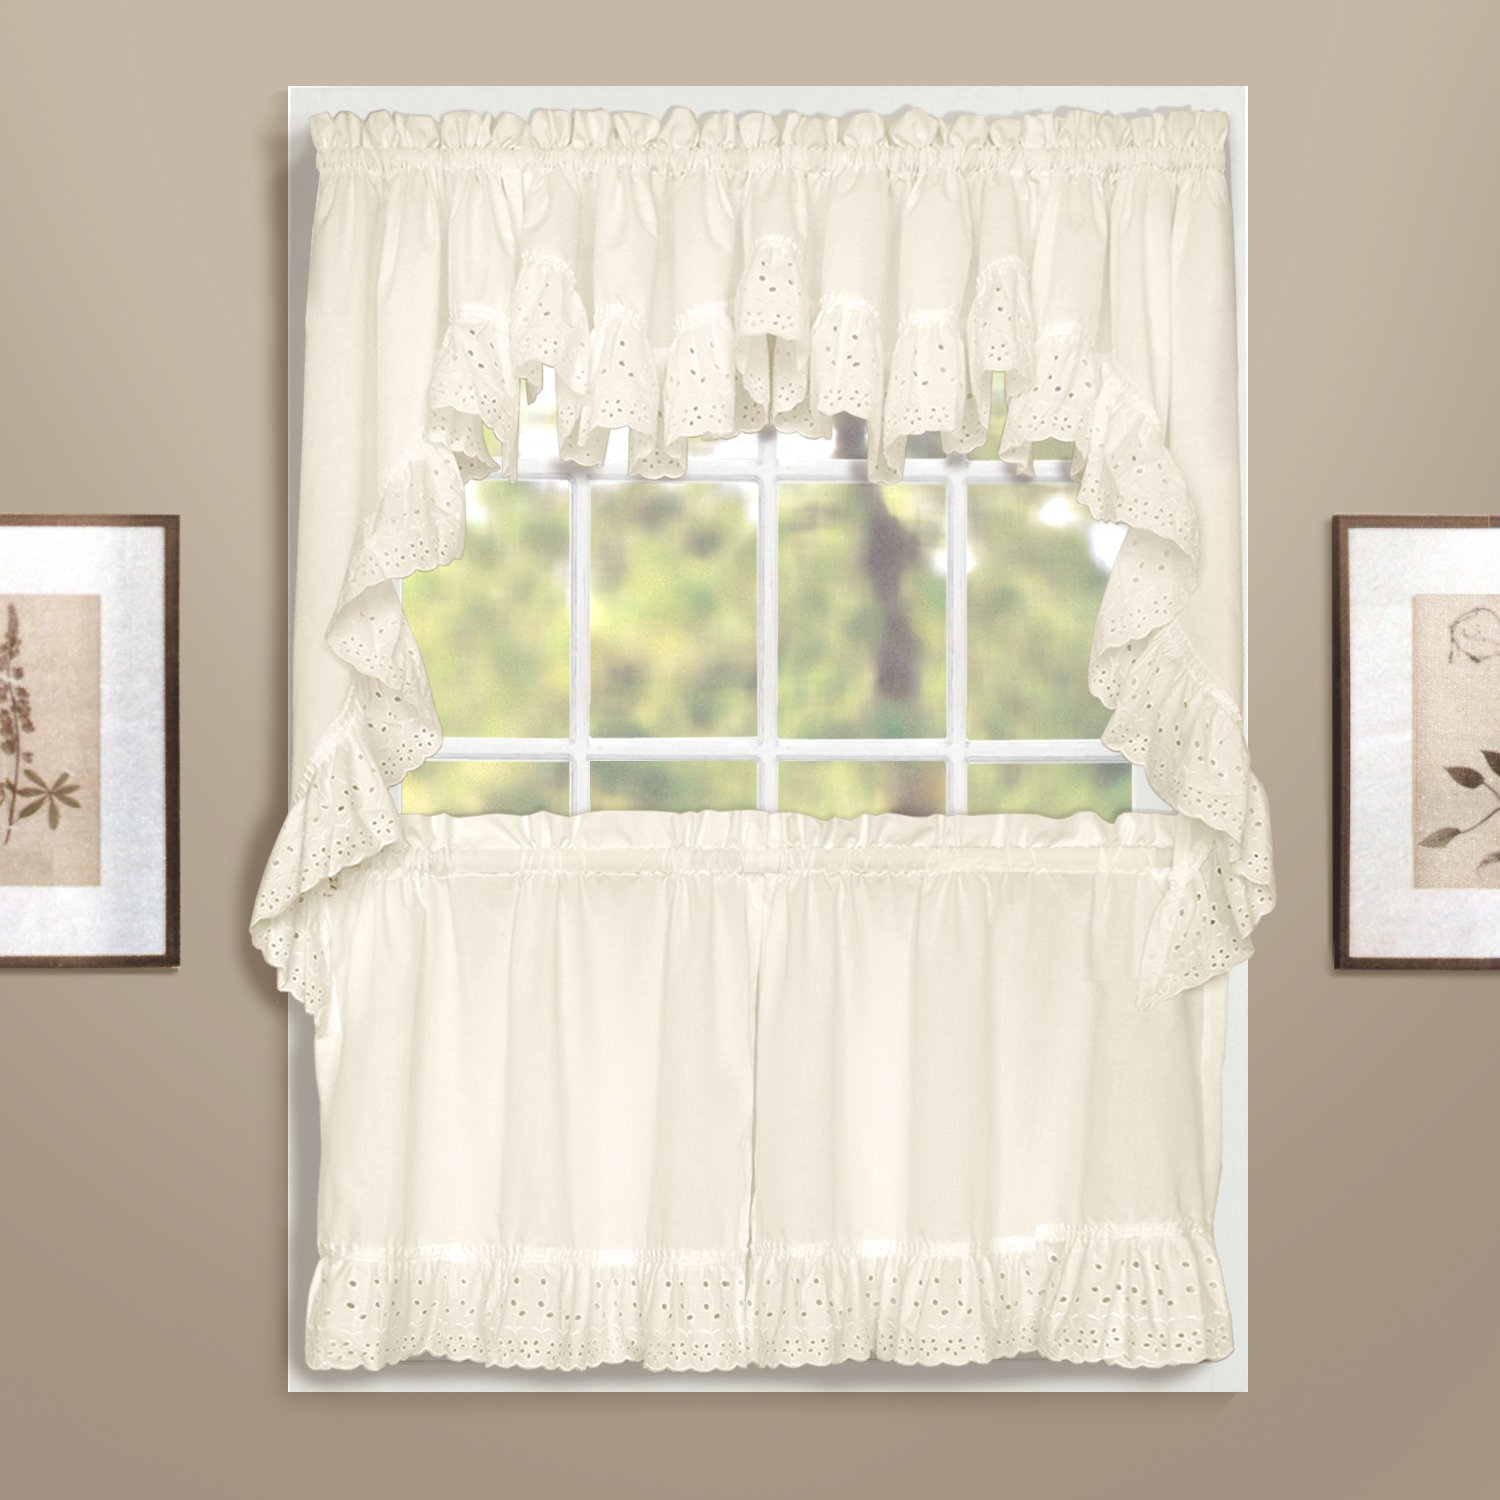 Amazon.com: United Curtain Vienna Lace Double Crescent Valance, 60 ...